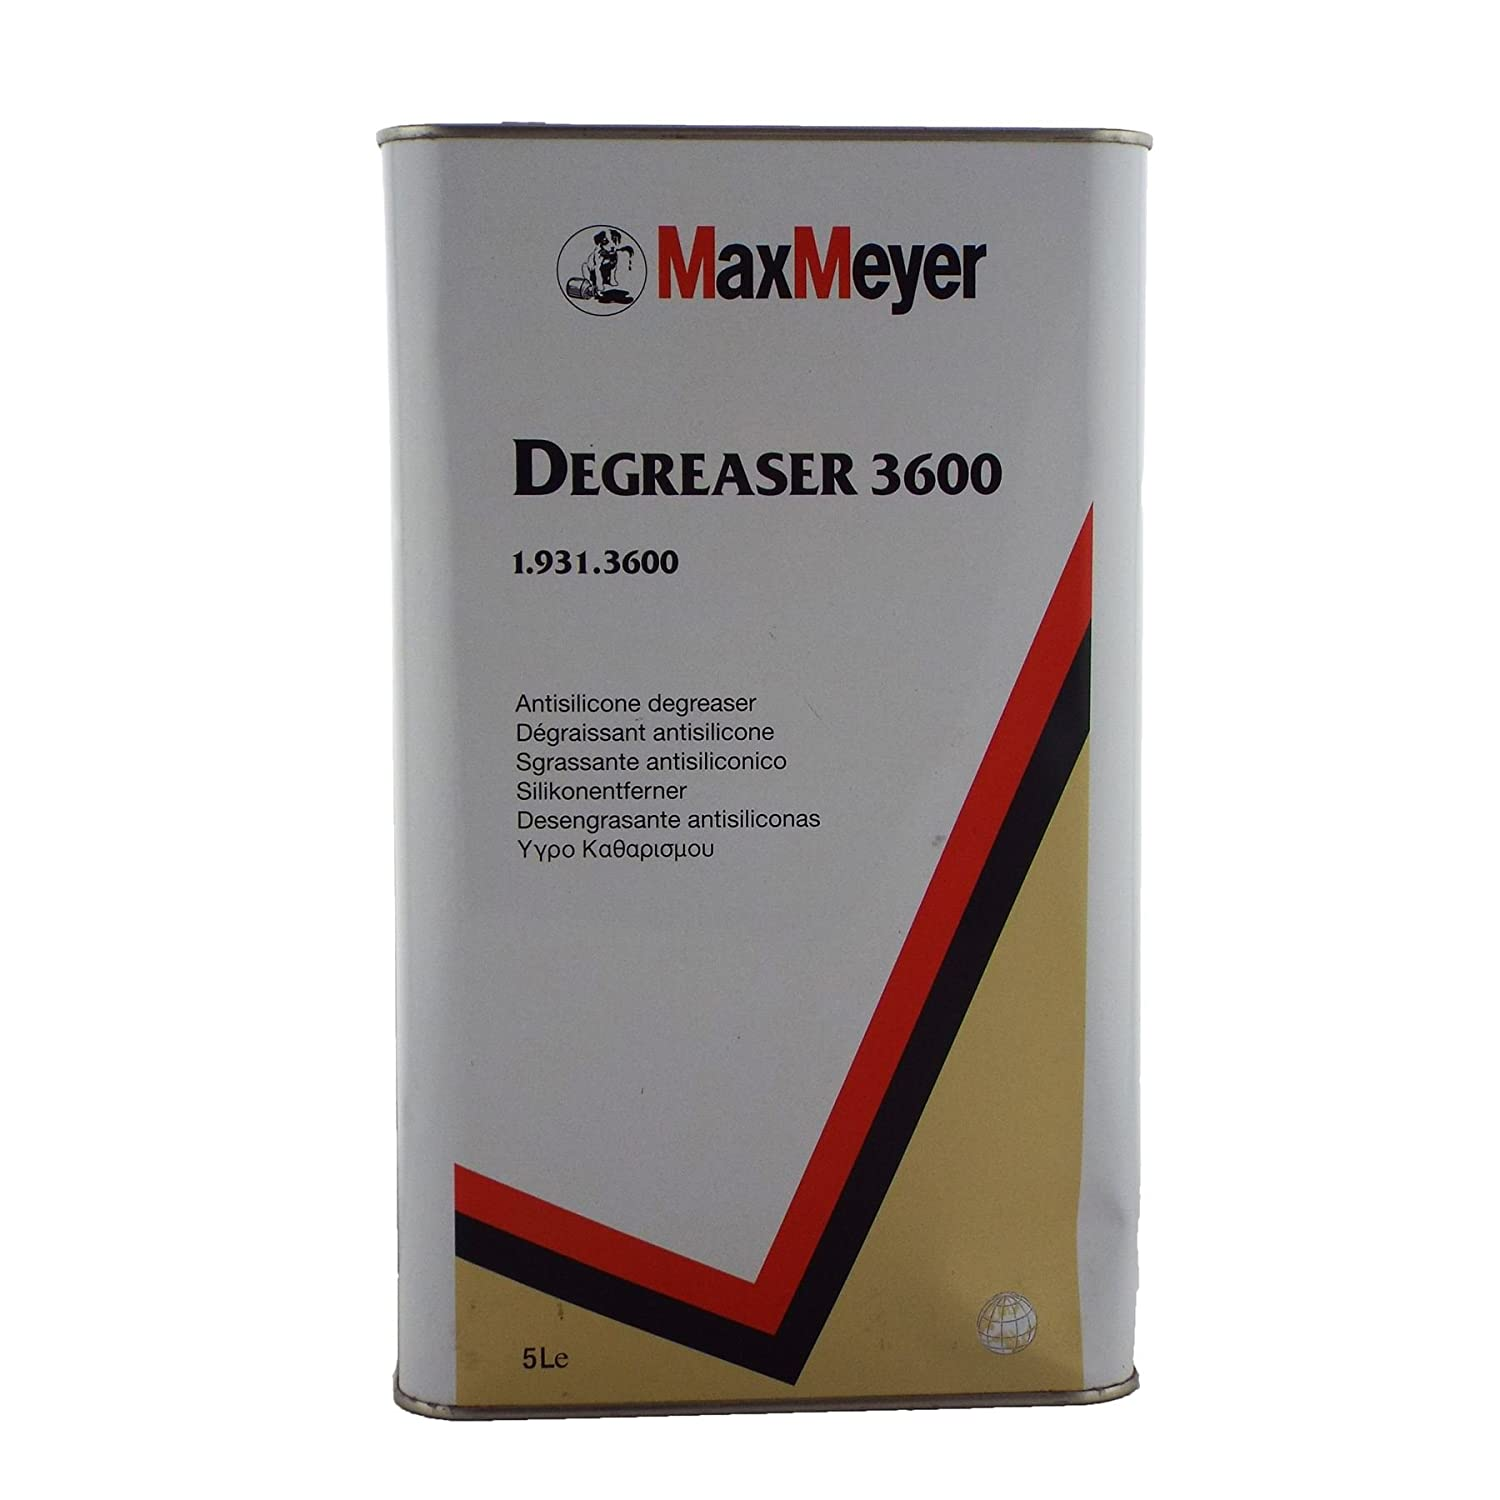 Max Meyer Anti Silicone Degreaser 1.931.3600 5ltr Paint Grease/Dirt Remover Designed to Remove Dirt/Oils/Waxes/Silicone/Other Contaminant Agents From Bare Metal Areas MaxMeyer